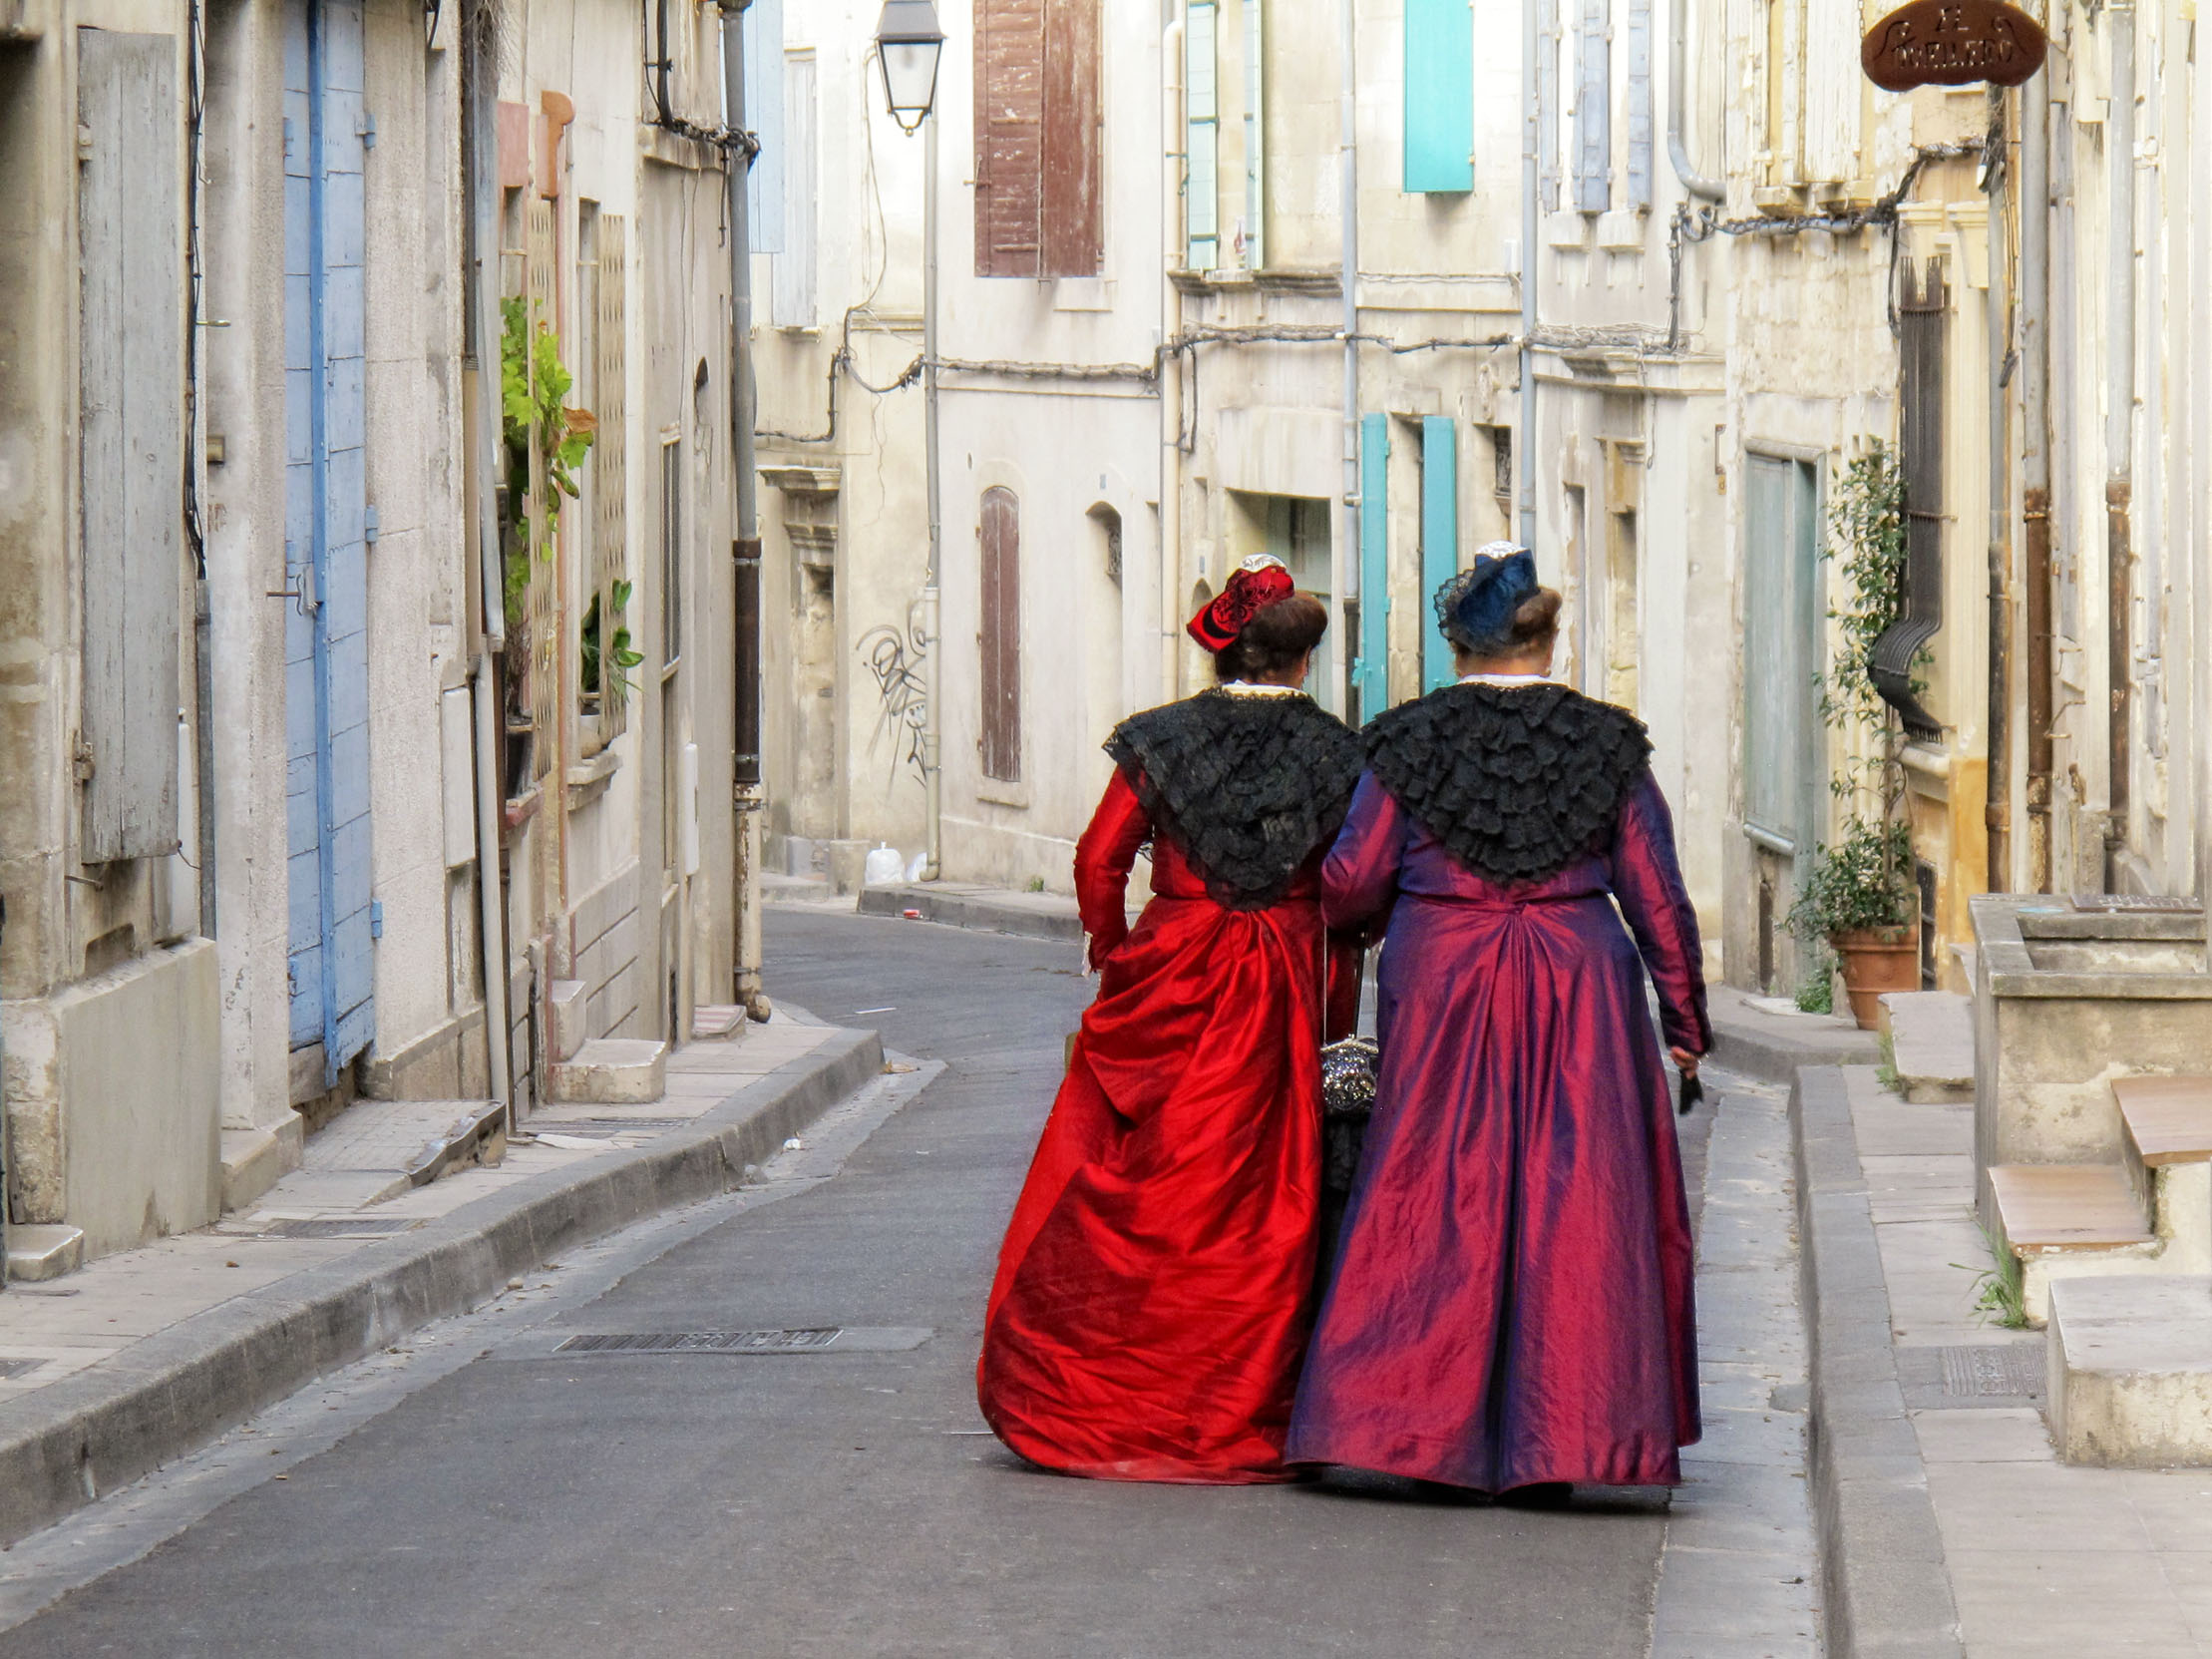 Going home after the festivities - Arles, France